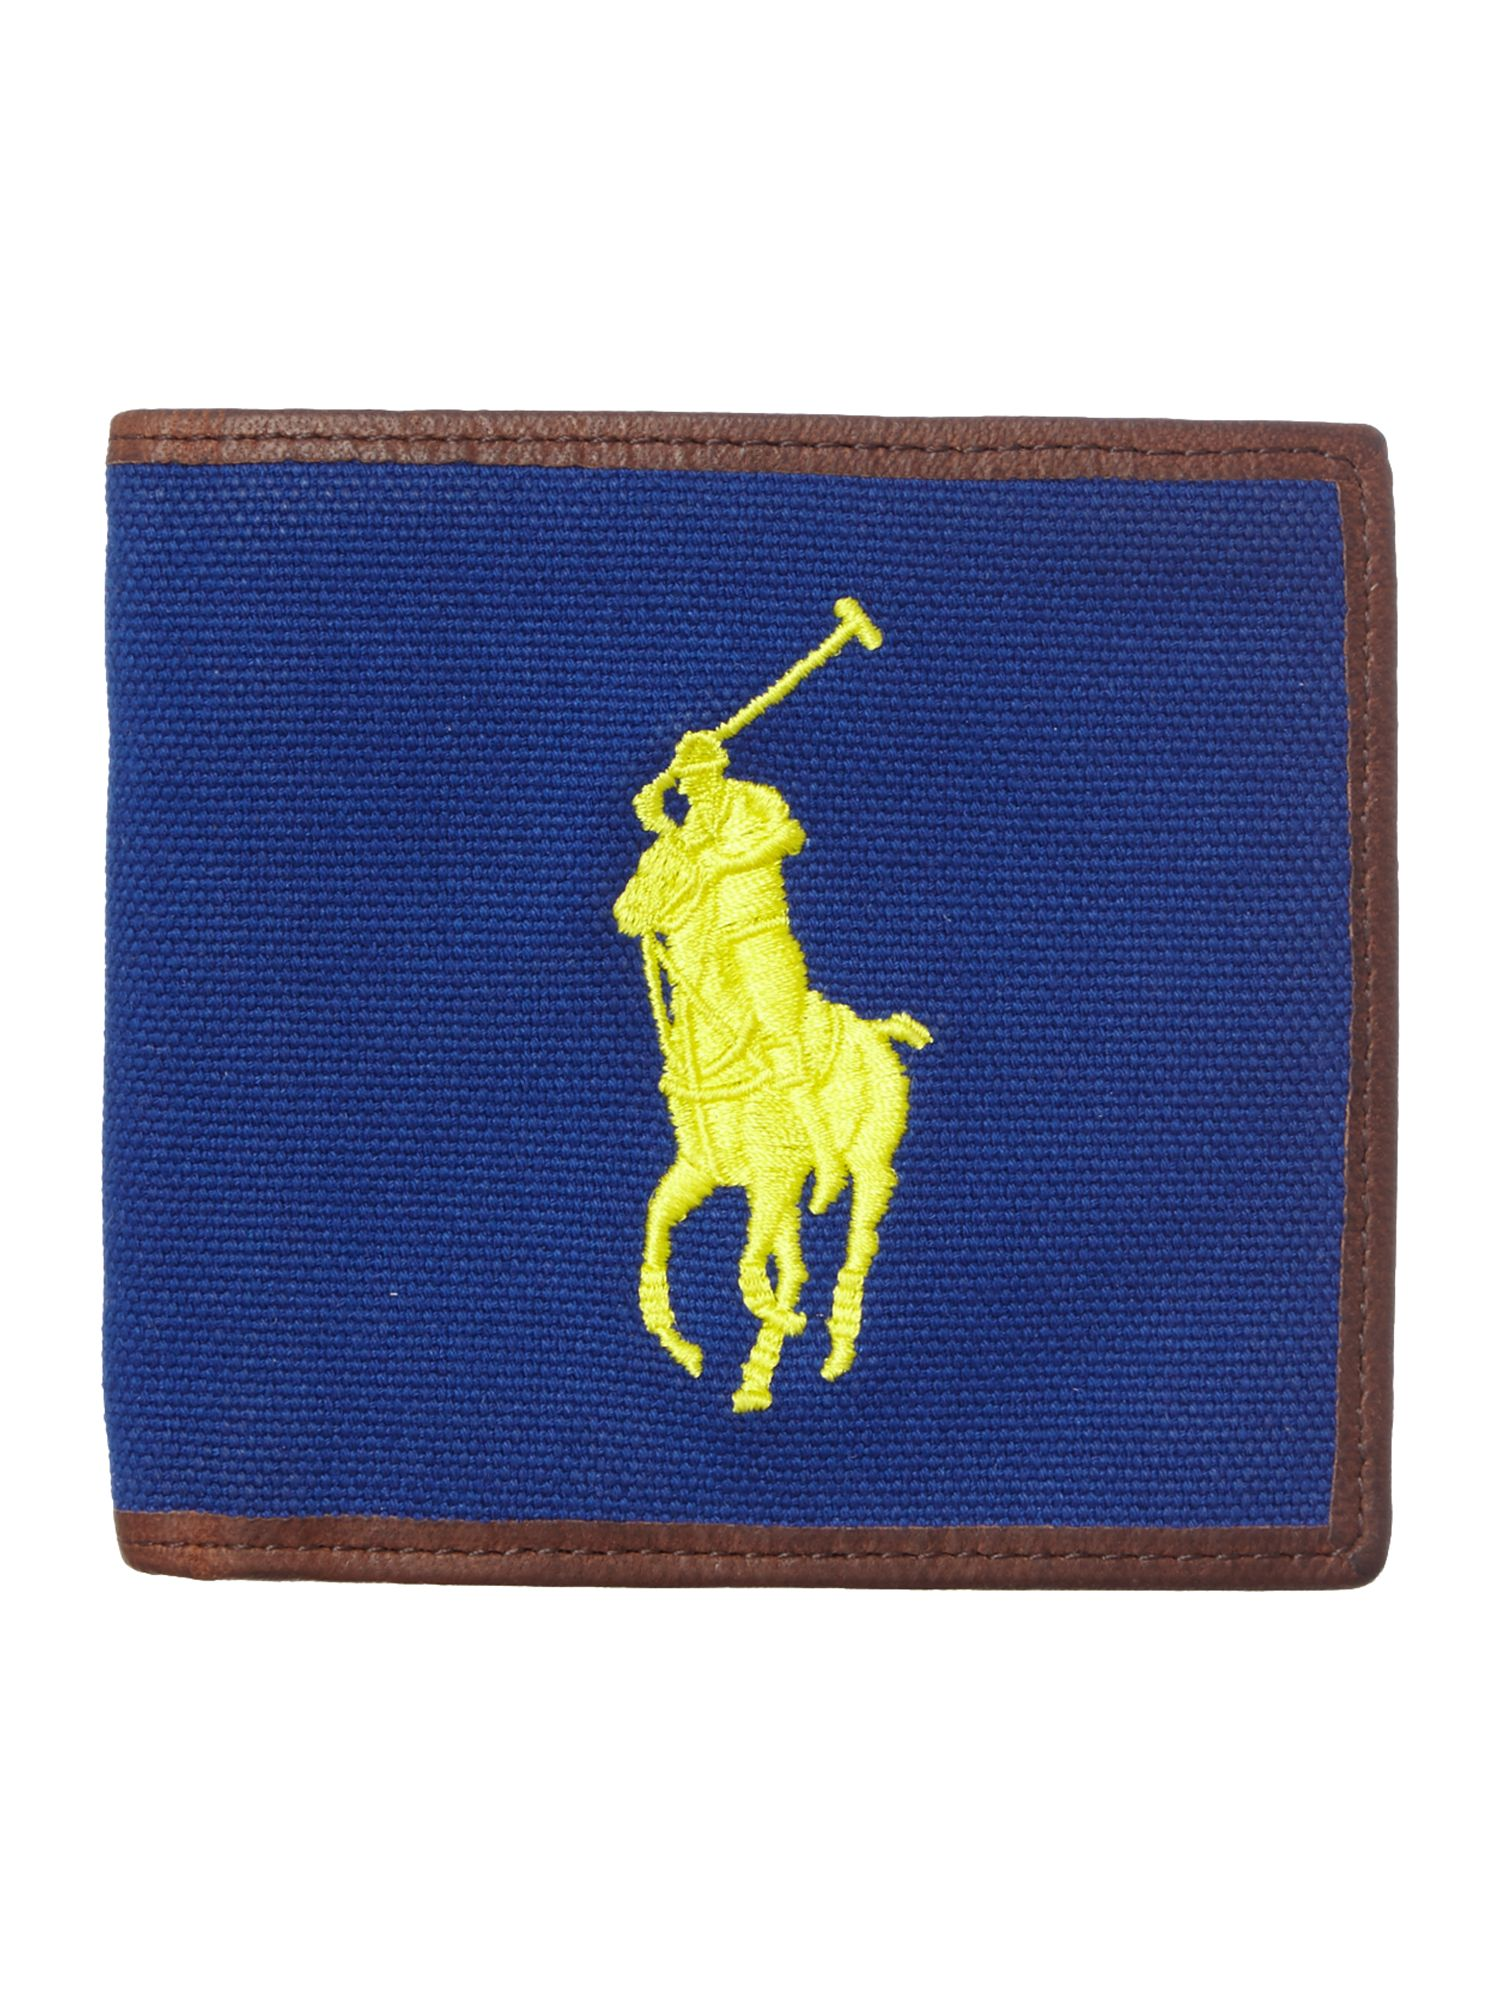 Big polo pony wallet